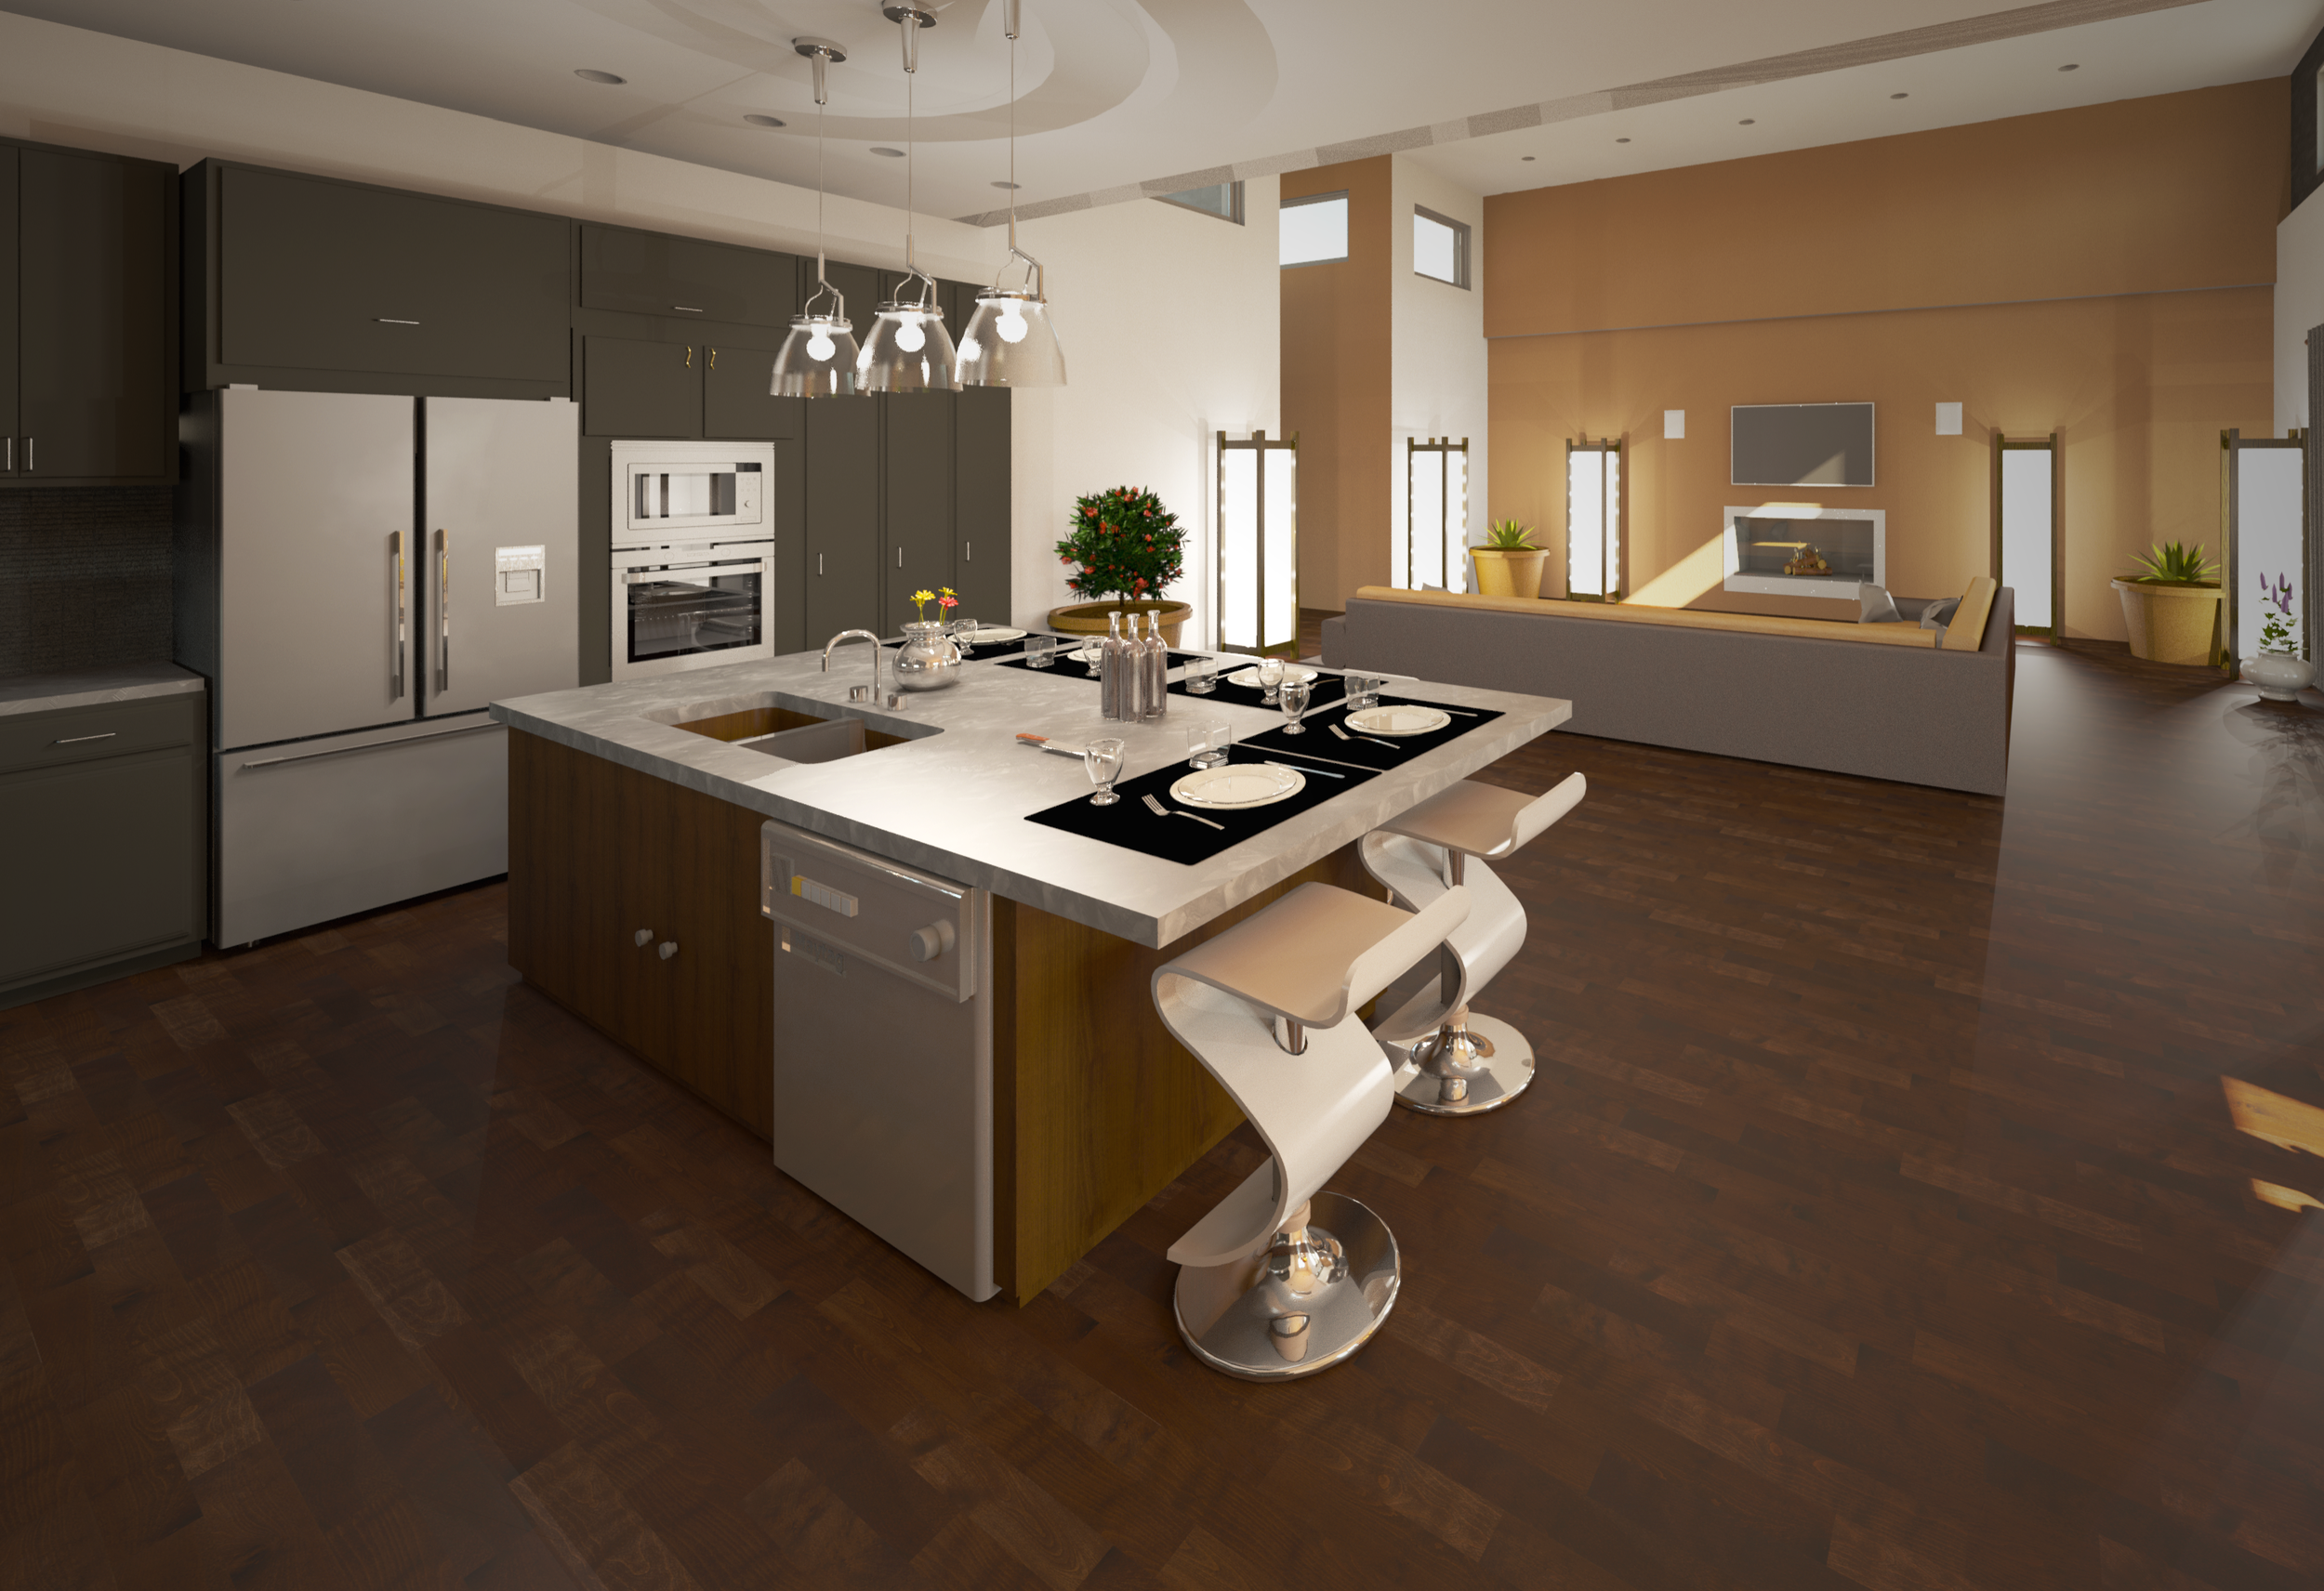 1A-I_Great_Room_With_Kitchen 2.png